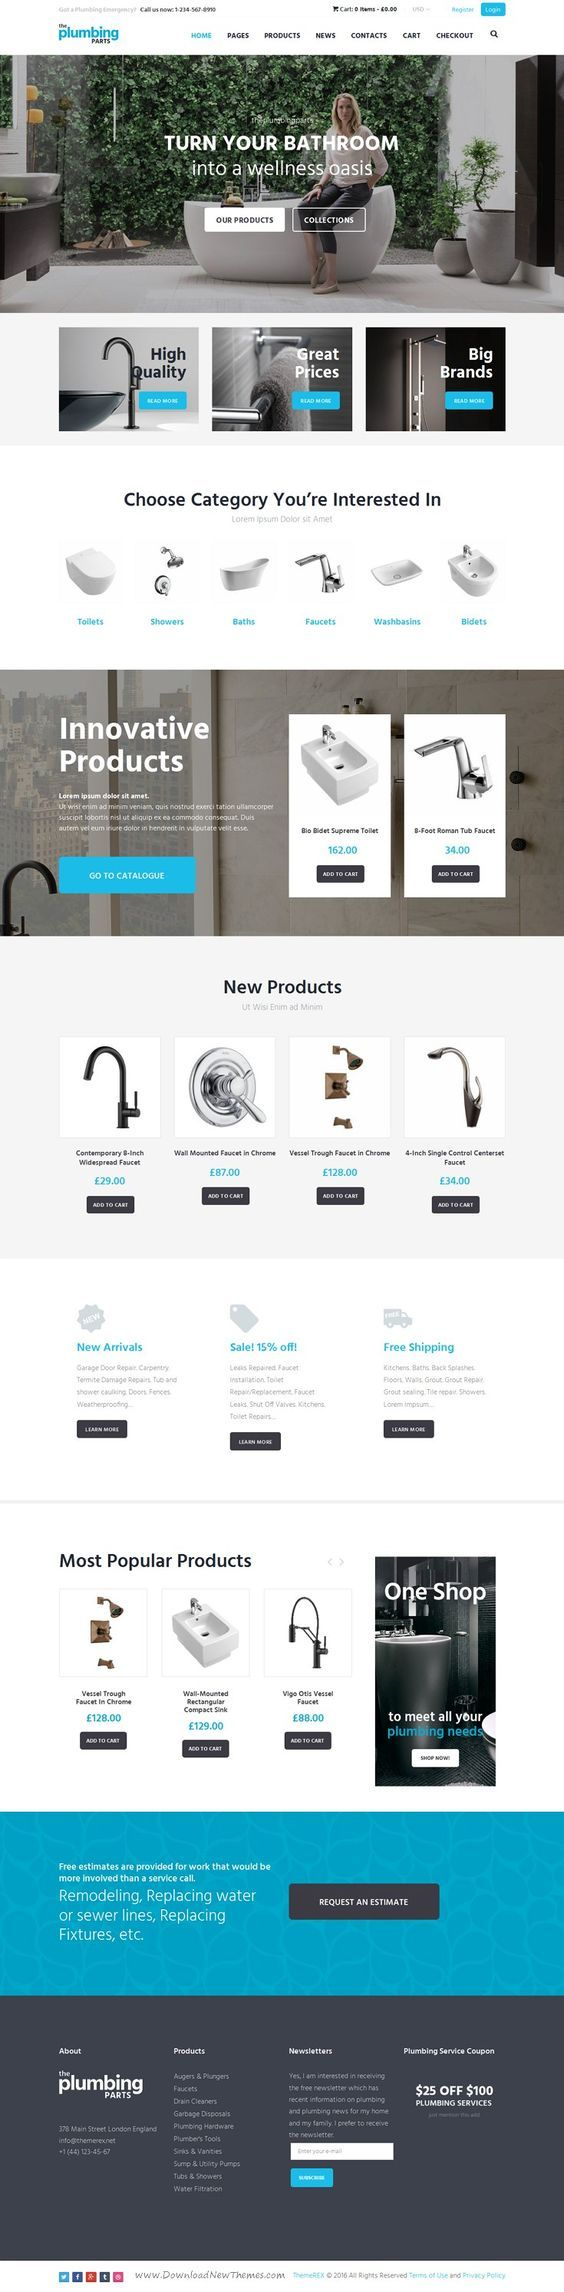 Beautiful responsive WordPress eCommerce #theme for any home repair and maintenance business: #plumbing, carpentry, remodeling & renovation, construction #website. Download Now!: